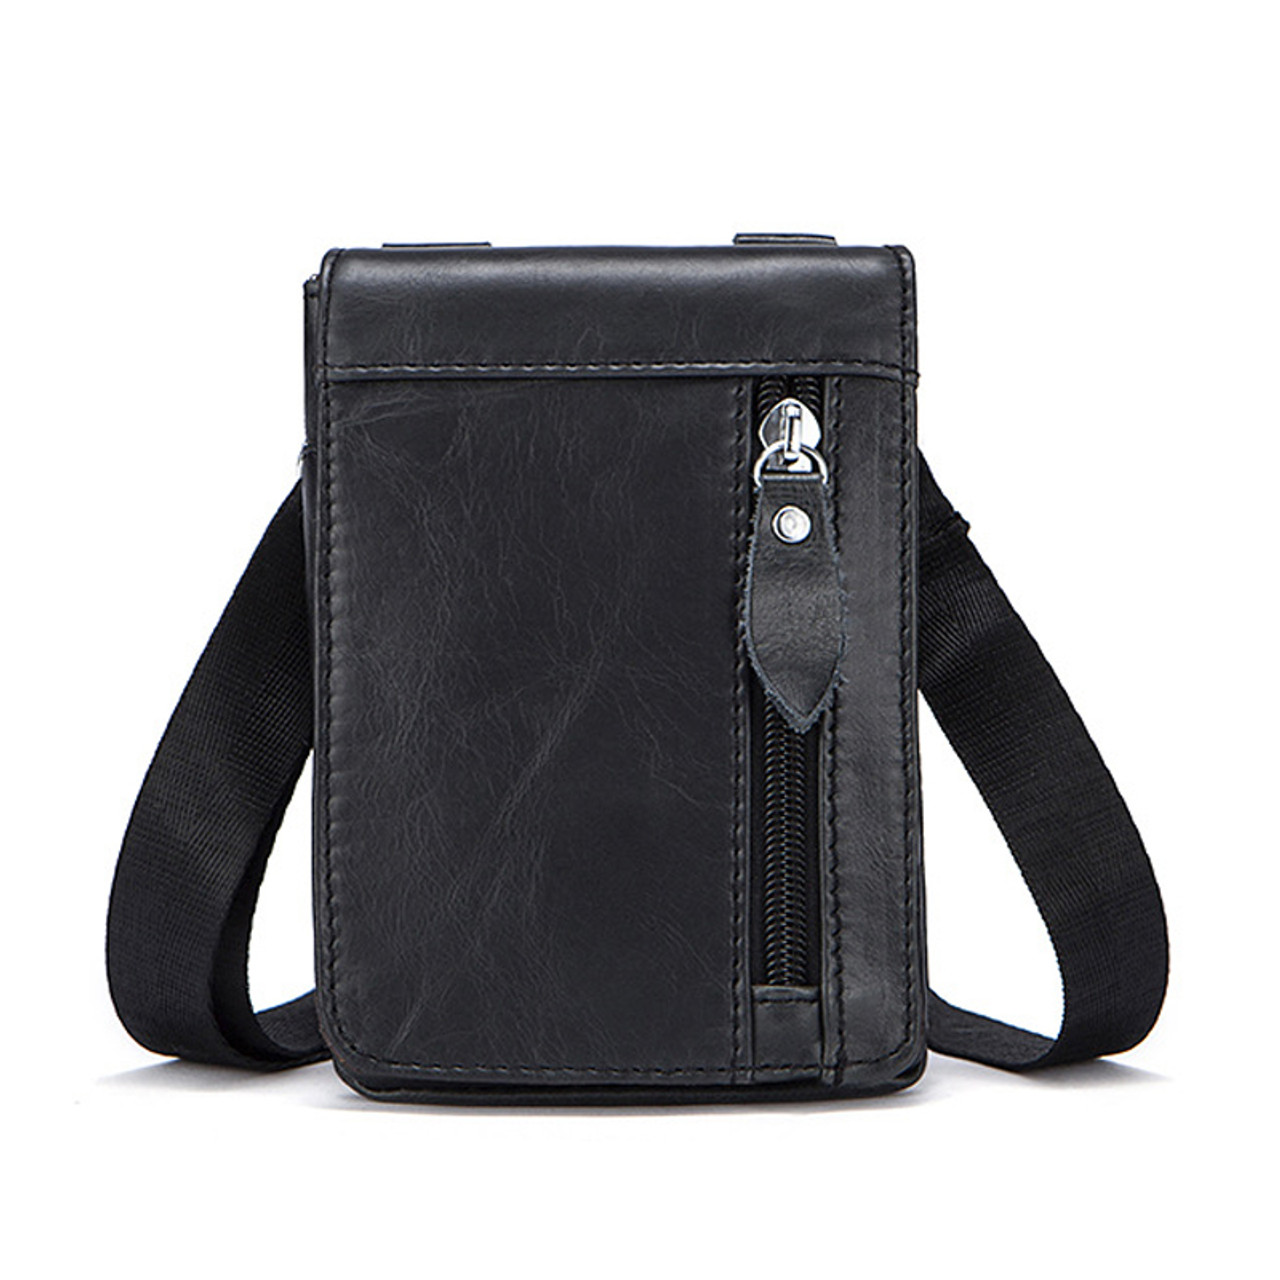 8e050d6c30d86 ... OTHERCHIC Genuine Leather Small Bags Men Leather Belt Waist Pack  Messenger Bags Phone Pouch Fanny Pack ...